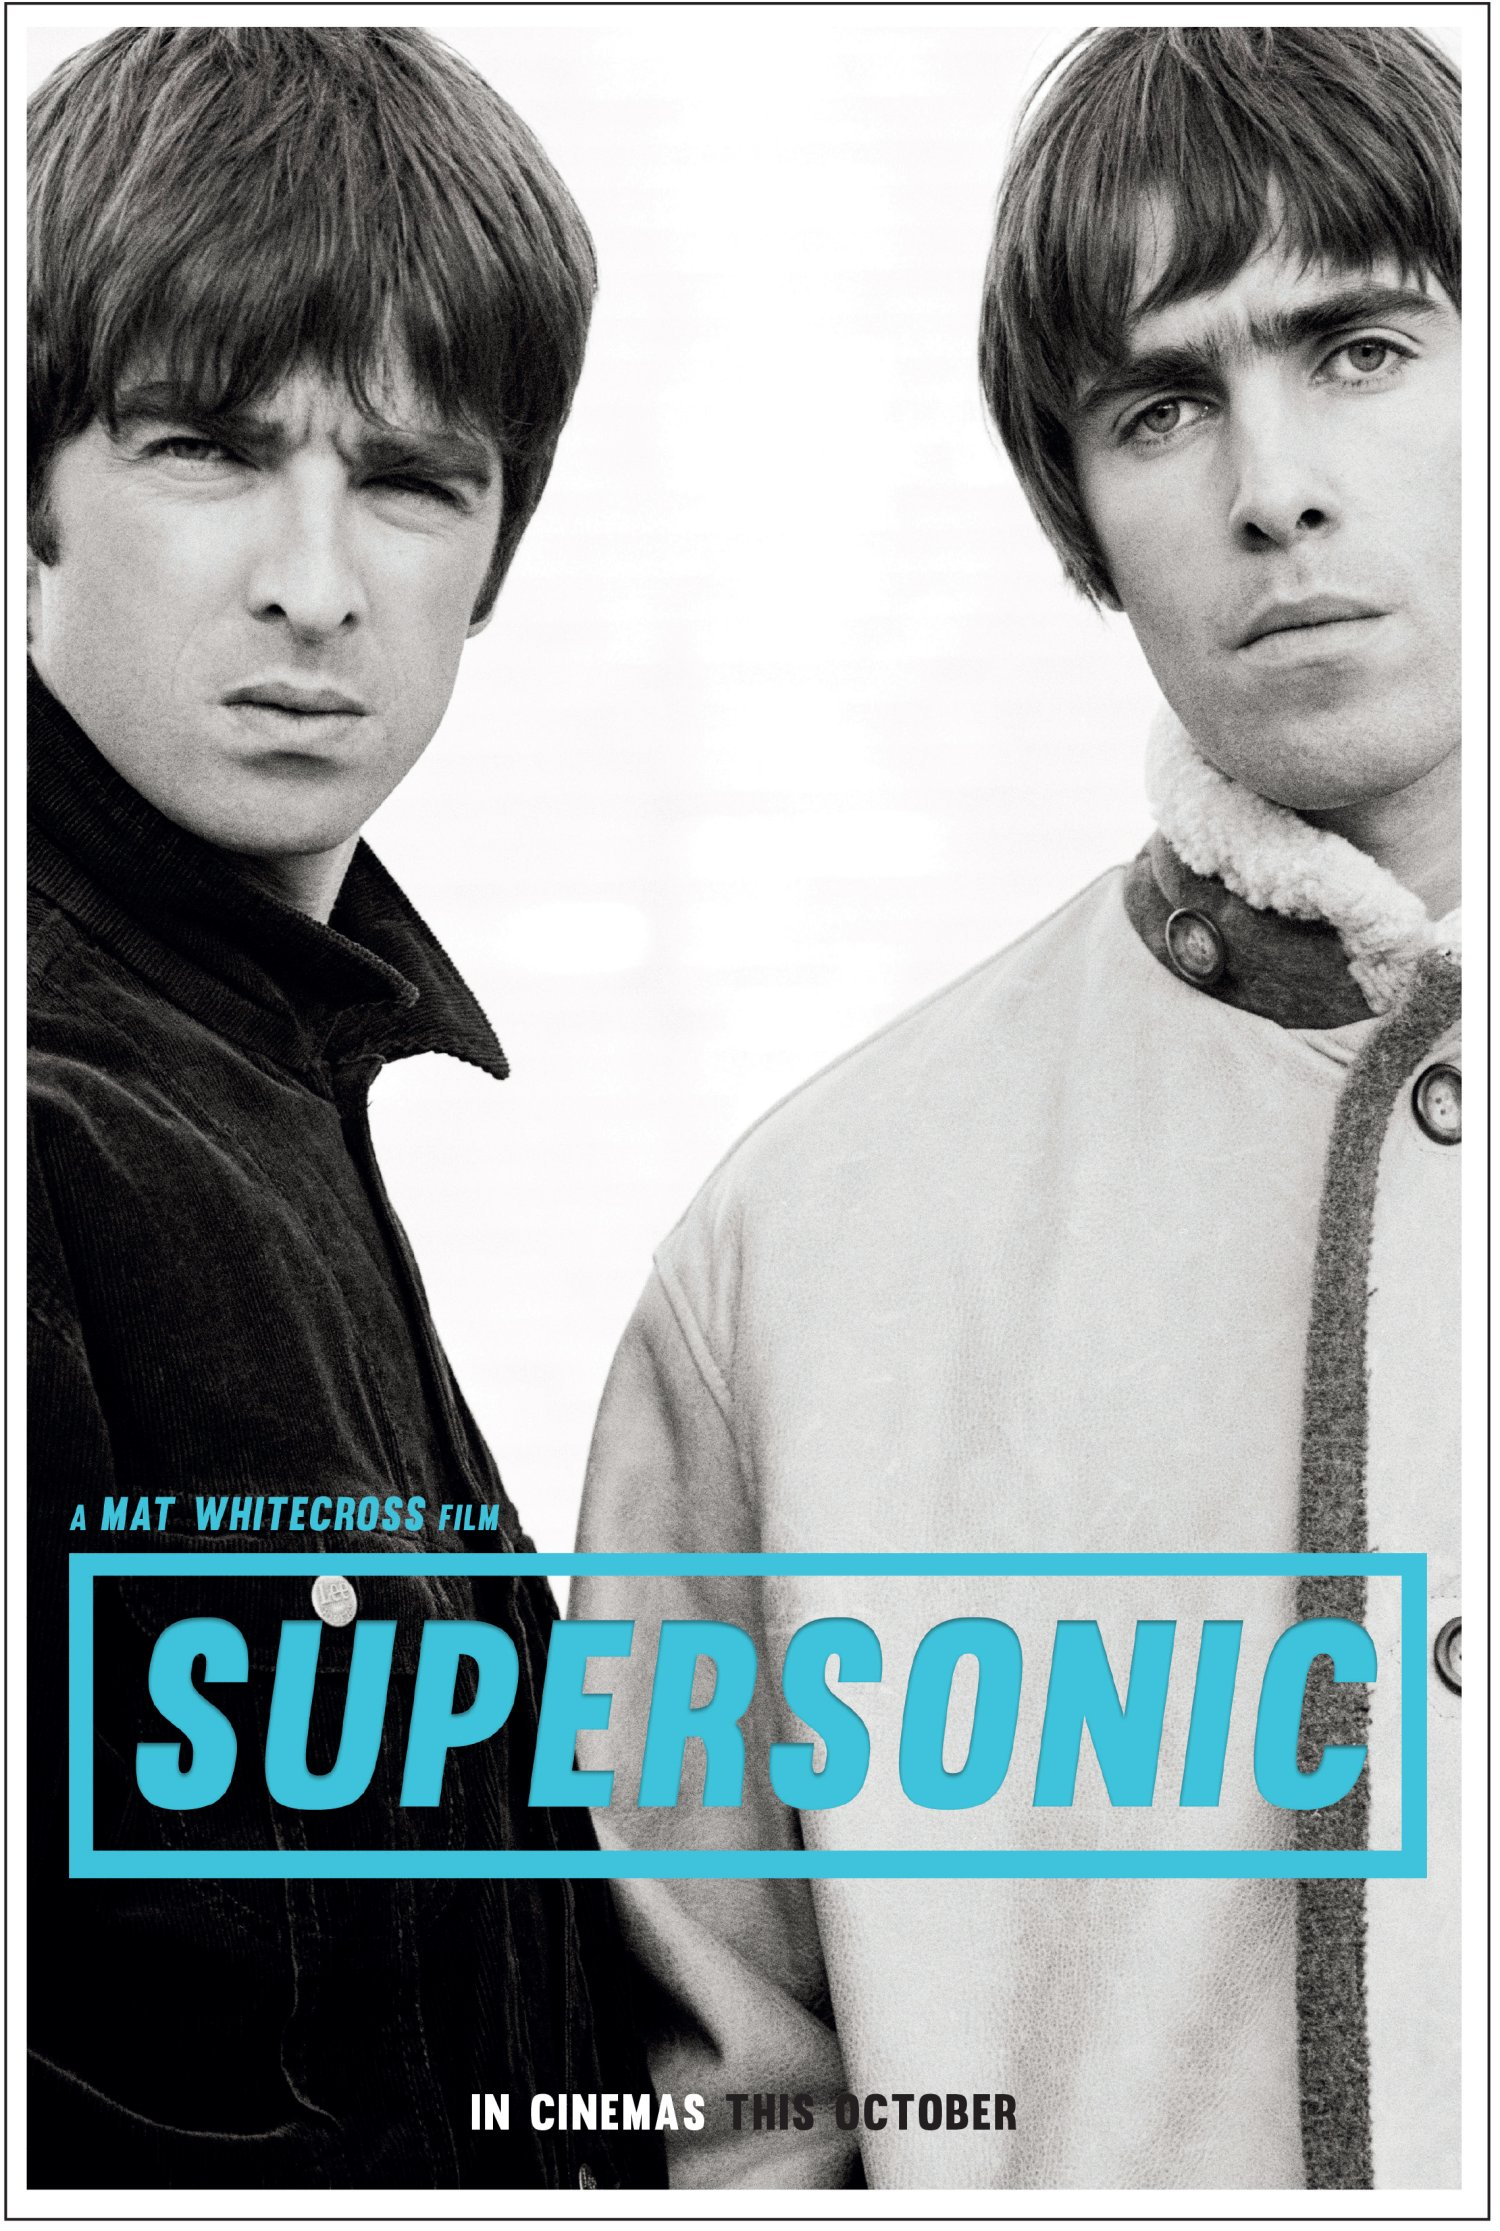 Oasis in Supersonic